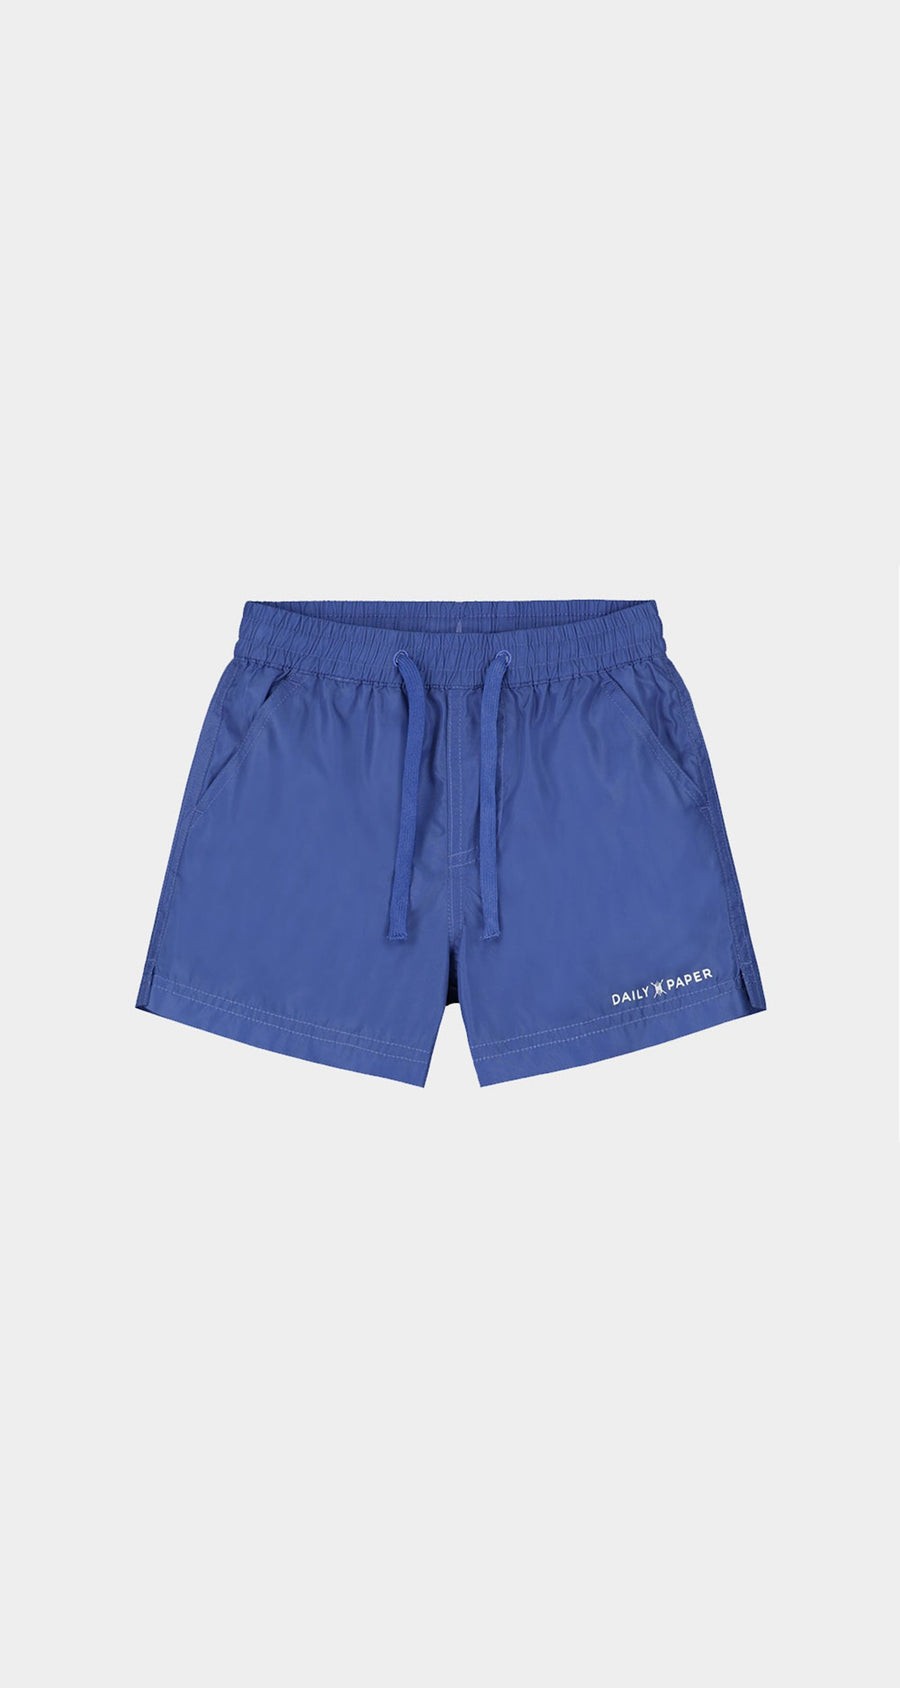 Daily Paper - Olympian Blue Kids Swim Shorts Front